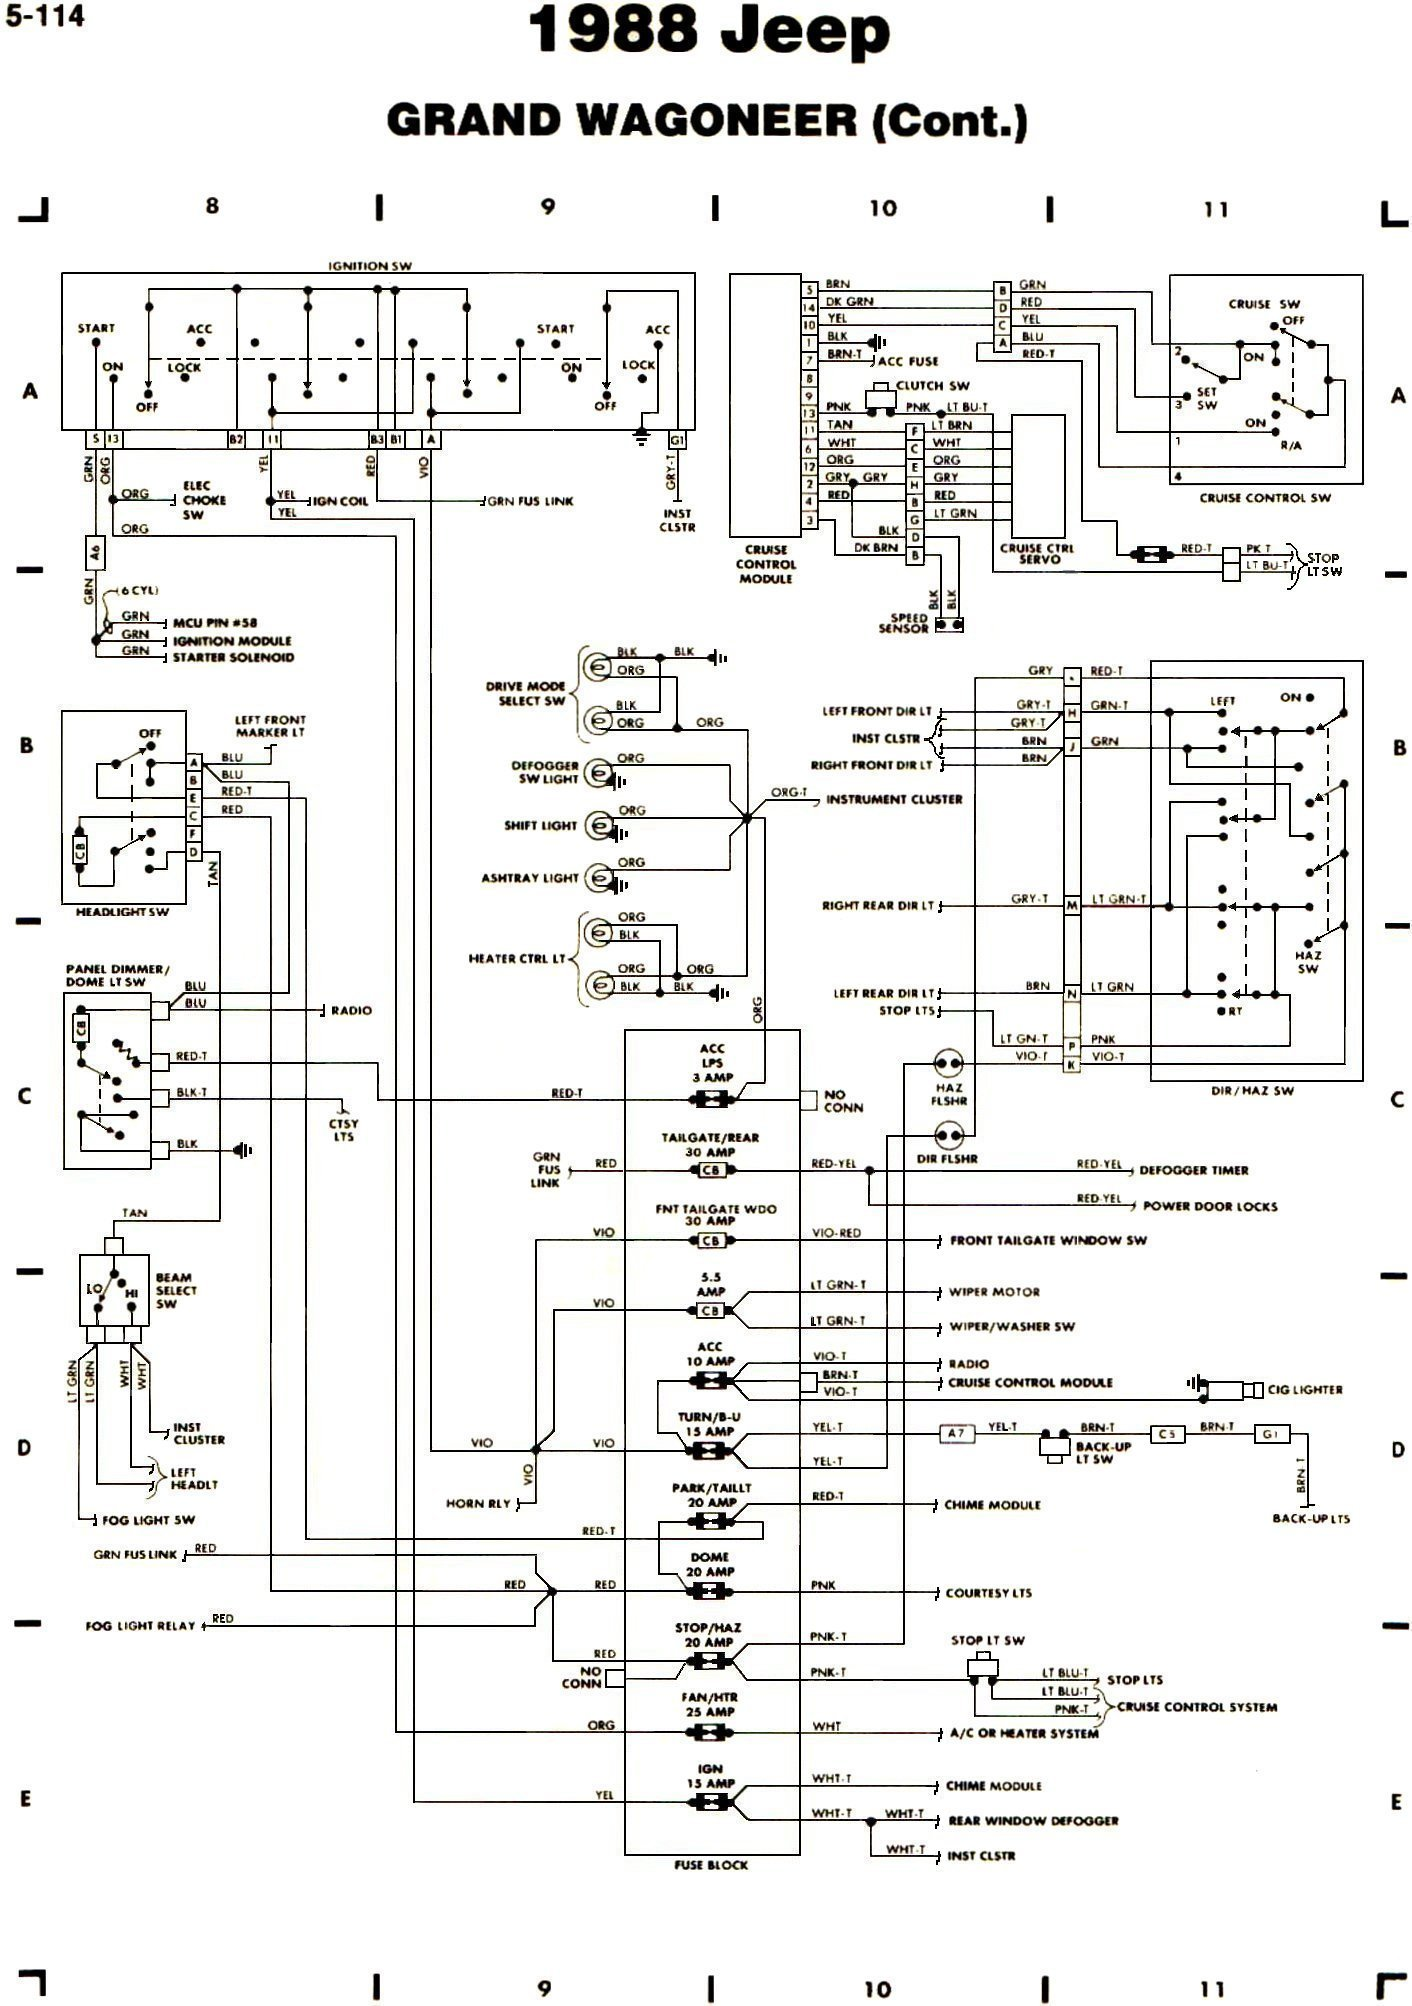 Peterbilt 387 Fuse Box Diagram 30 Wiring Images Acura Mdx 2010 Primary Underhood Freightliner